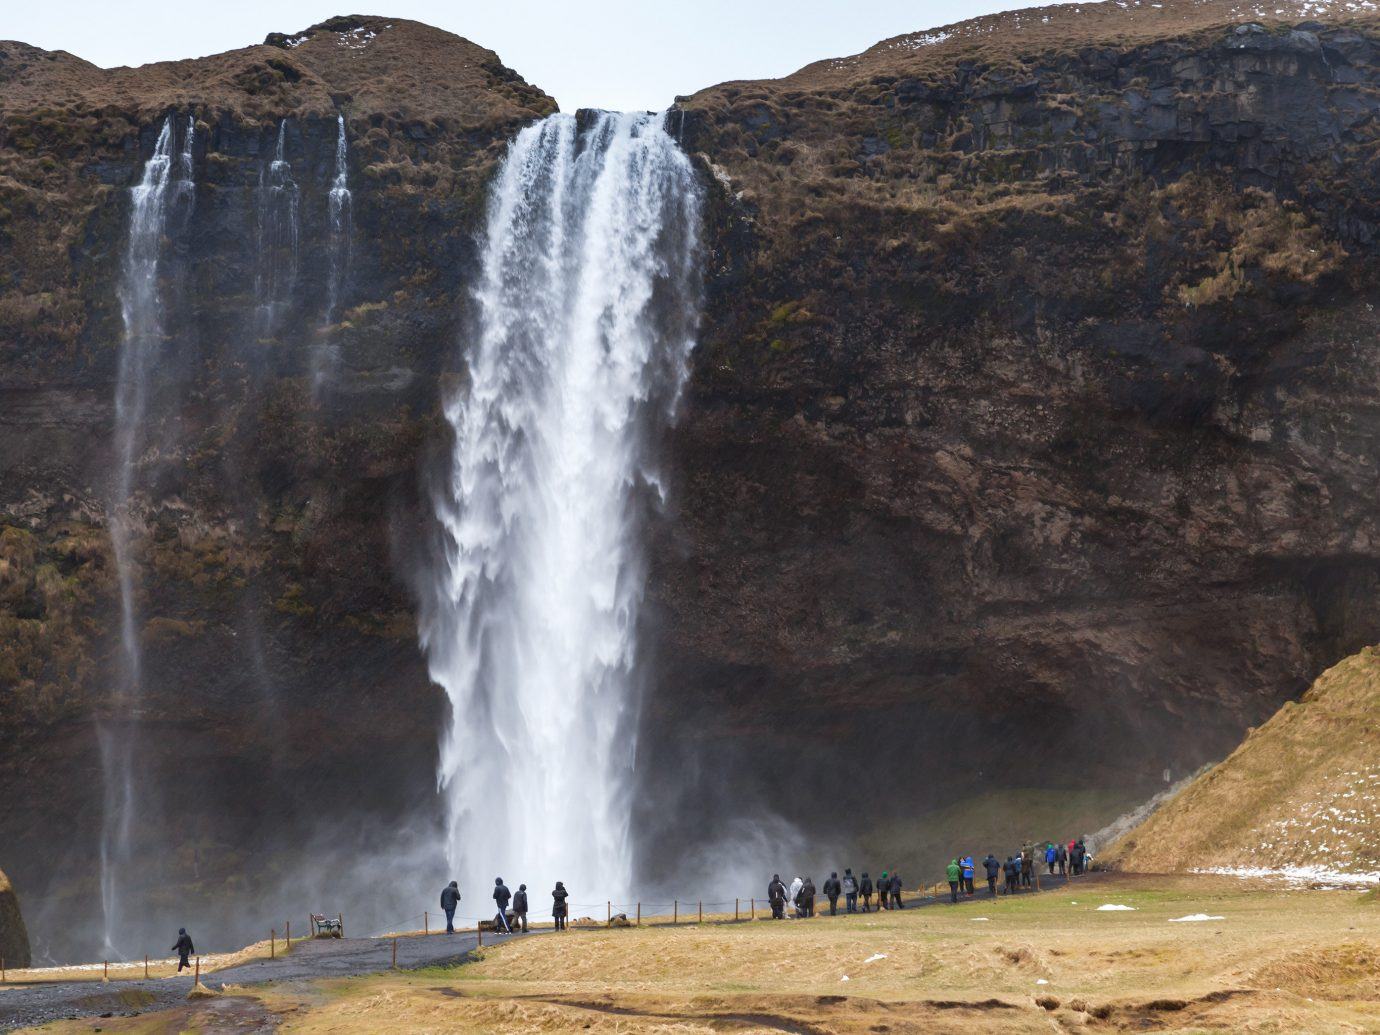 Iceland Outdoors + Adventure Road Trips Waterfall body of water water water resources chute water feature watercourse escarpment hill station mountain geology formation landscape